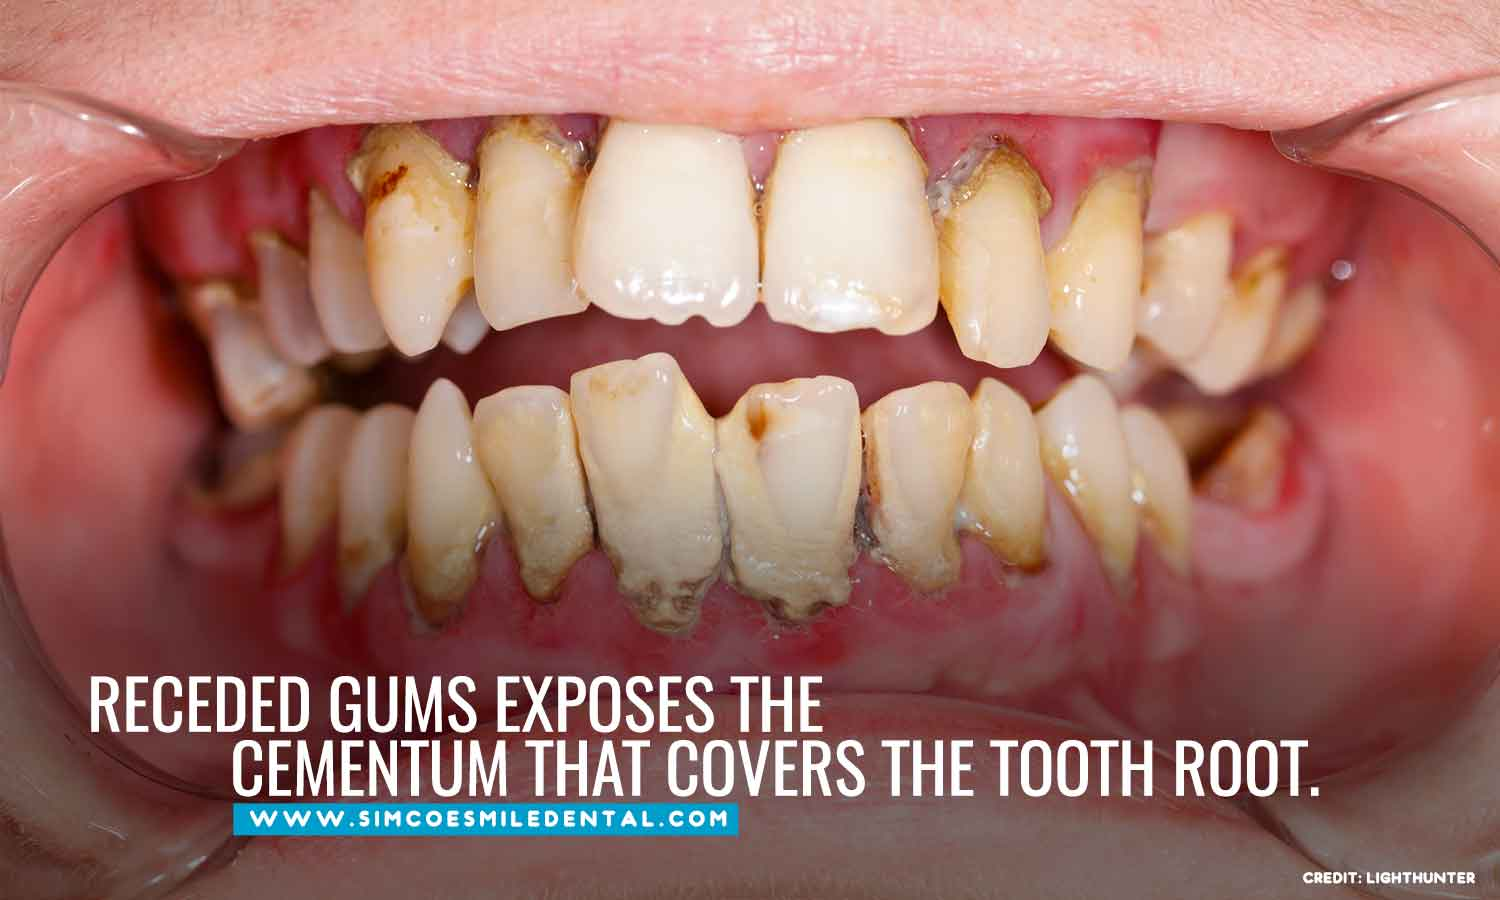 Receded-gums-exposes-the-cementum-that-covers-the-tooth-root Overbrushing And Its Effects On Your Teeth